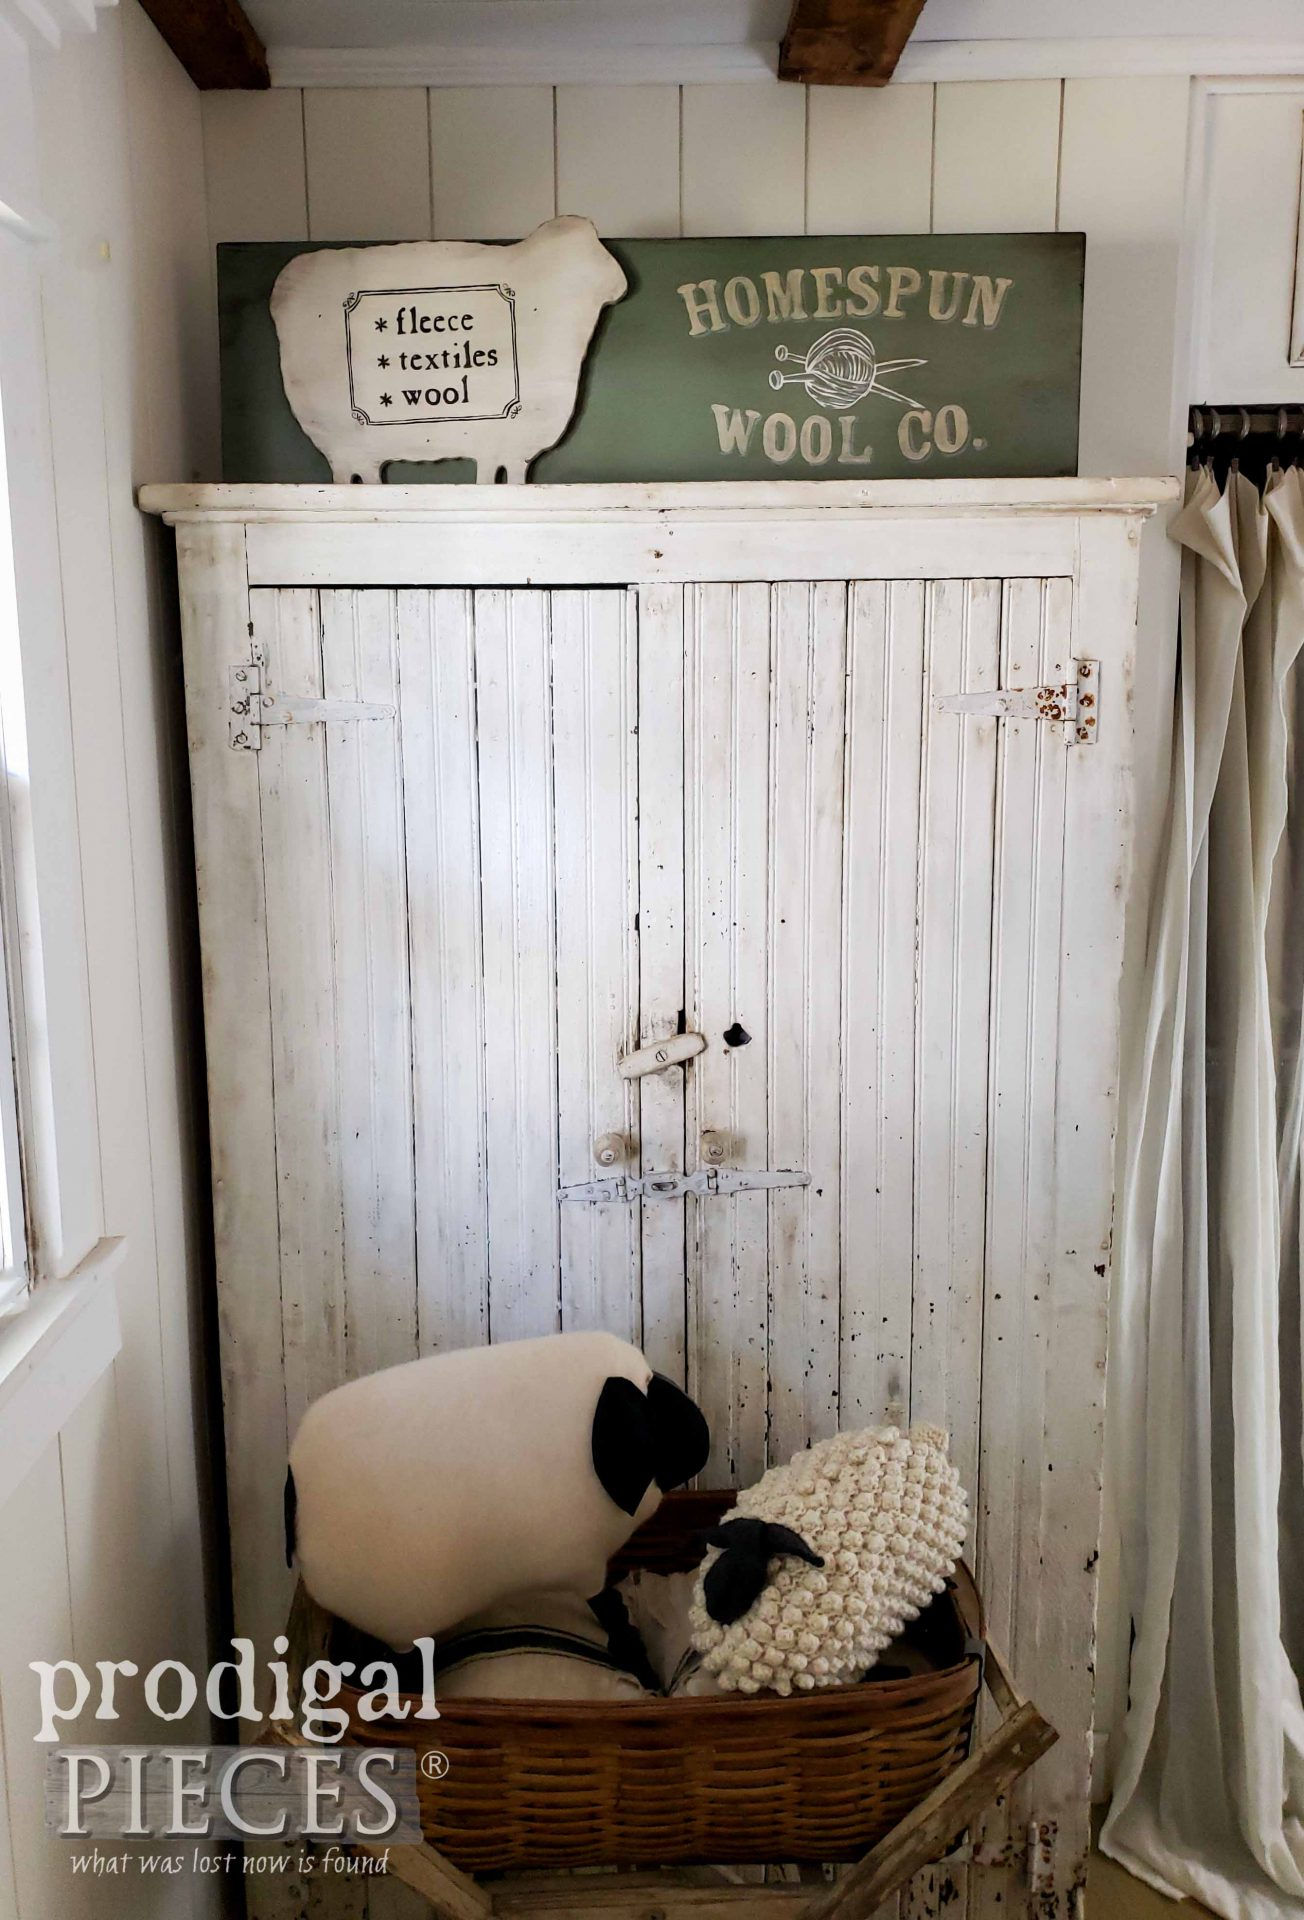 Simple Farmhouse Bedroom with Handmade Wool Co. Sign by Larissa of Prodigal Pieces | prodigalpieces.com #prodigalpieces #farmhouse #home #diy #homedecor